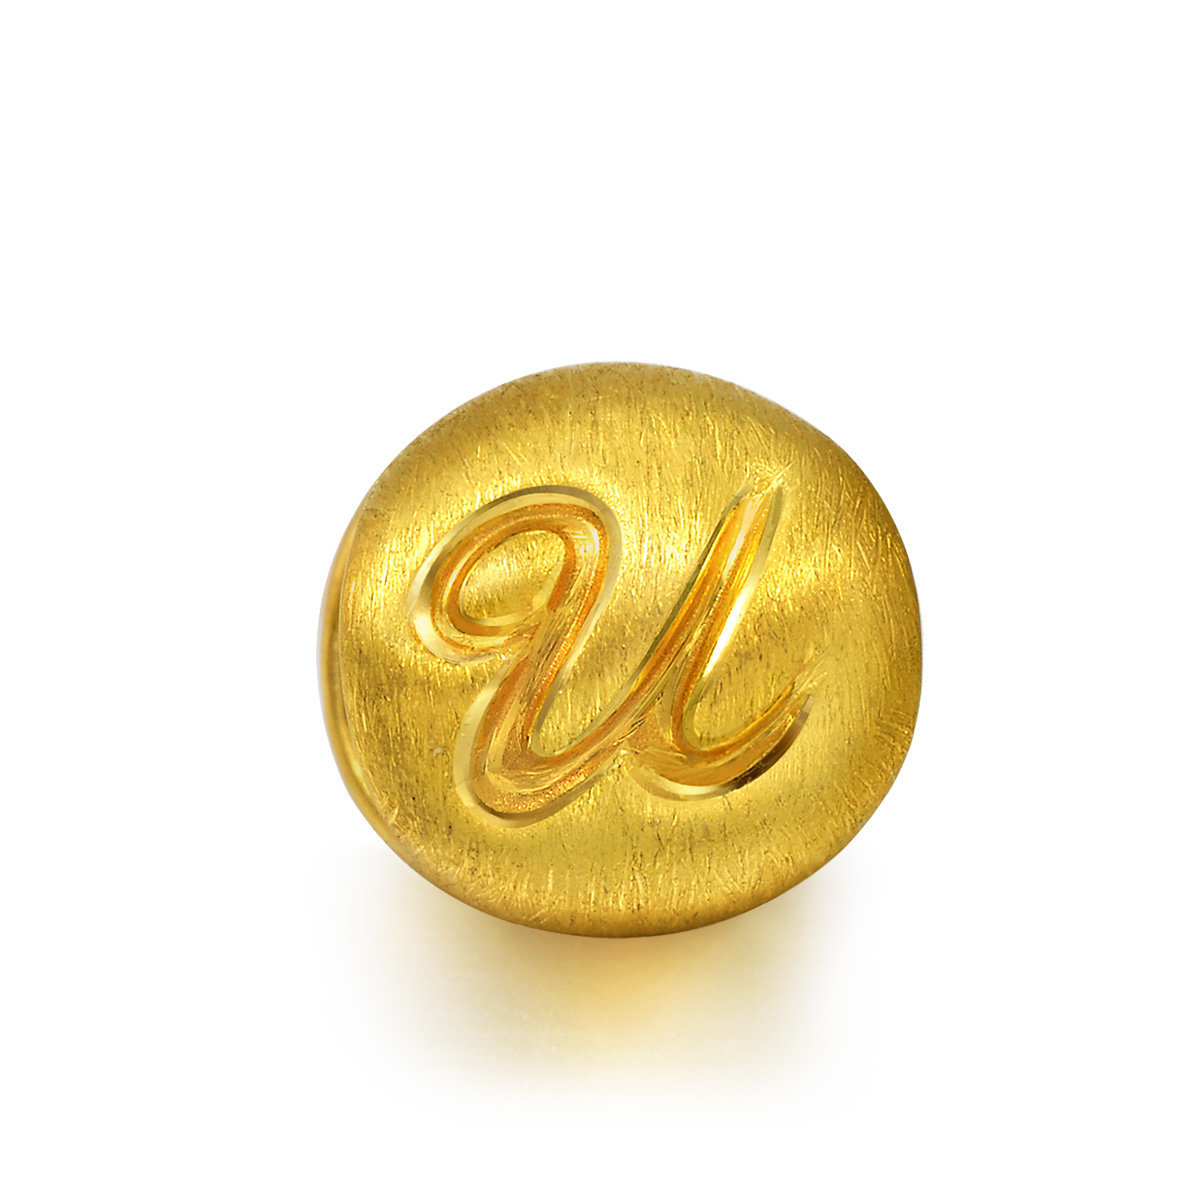 Charme 'Alphabets' 999 Gold Letter U Charm (Bracelet not included)